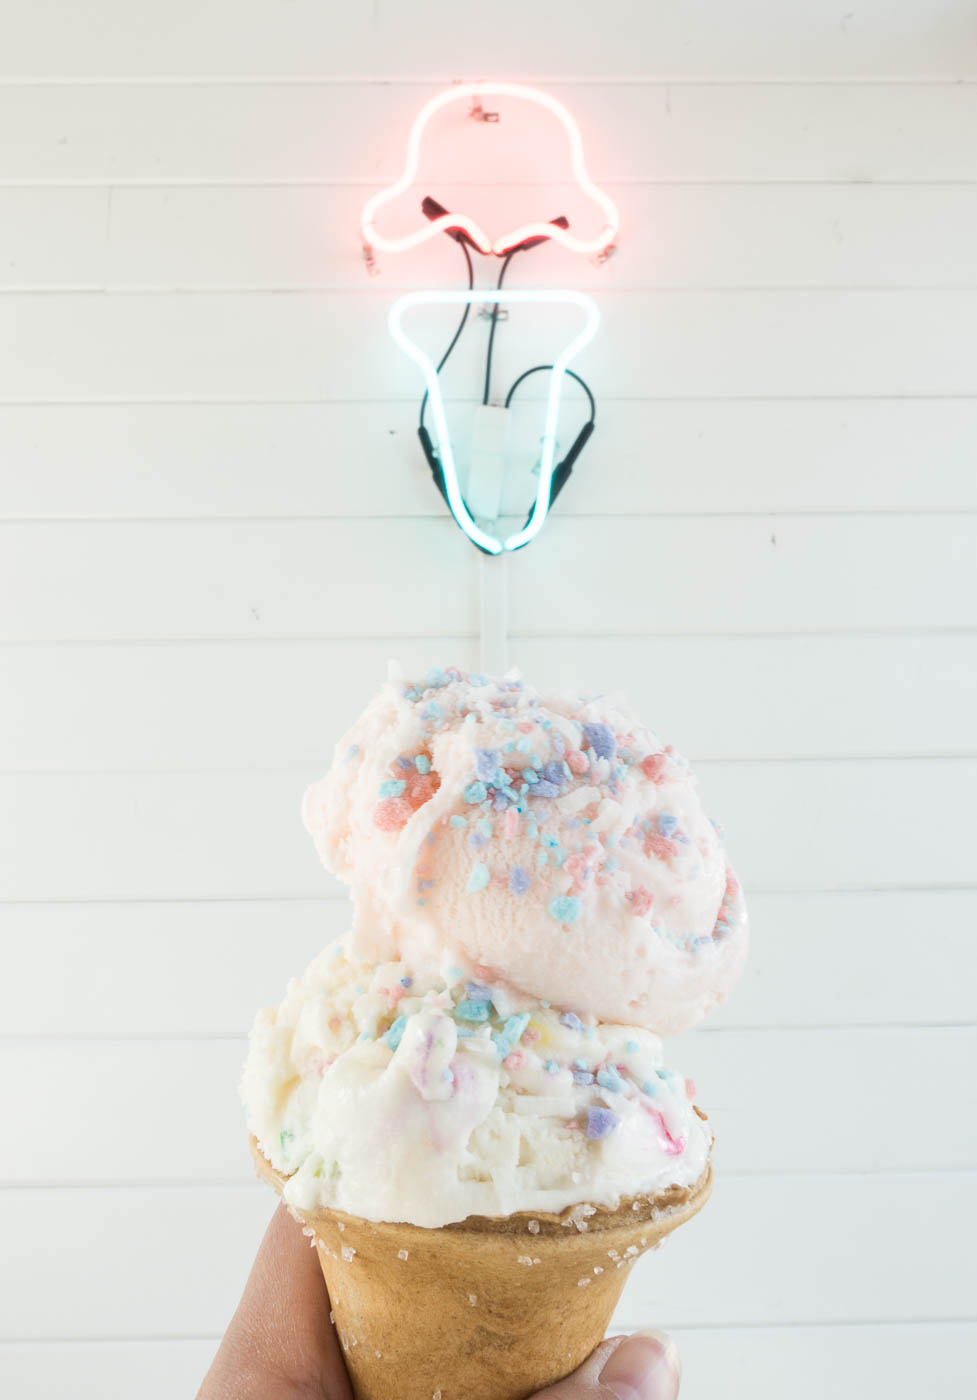 Rose water & confetti cake ice cream on a salted pretzel cone at Ice Cream & Shop(pe) | The Chic Diary.jpg